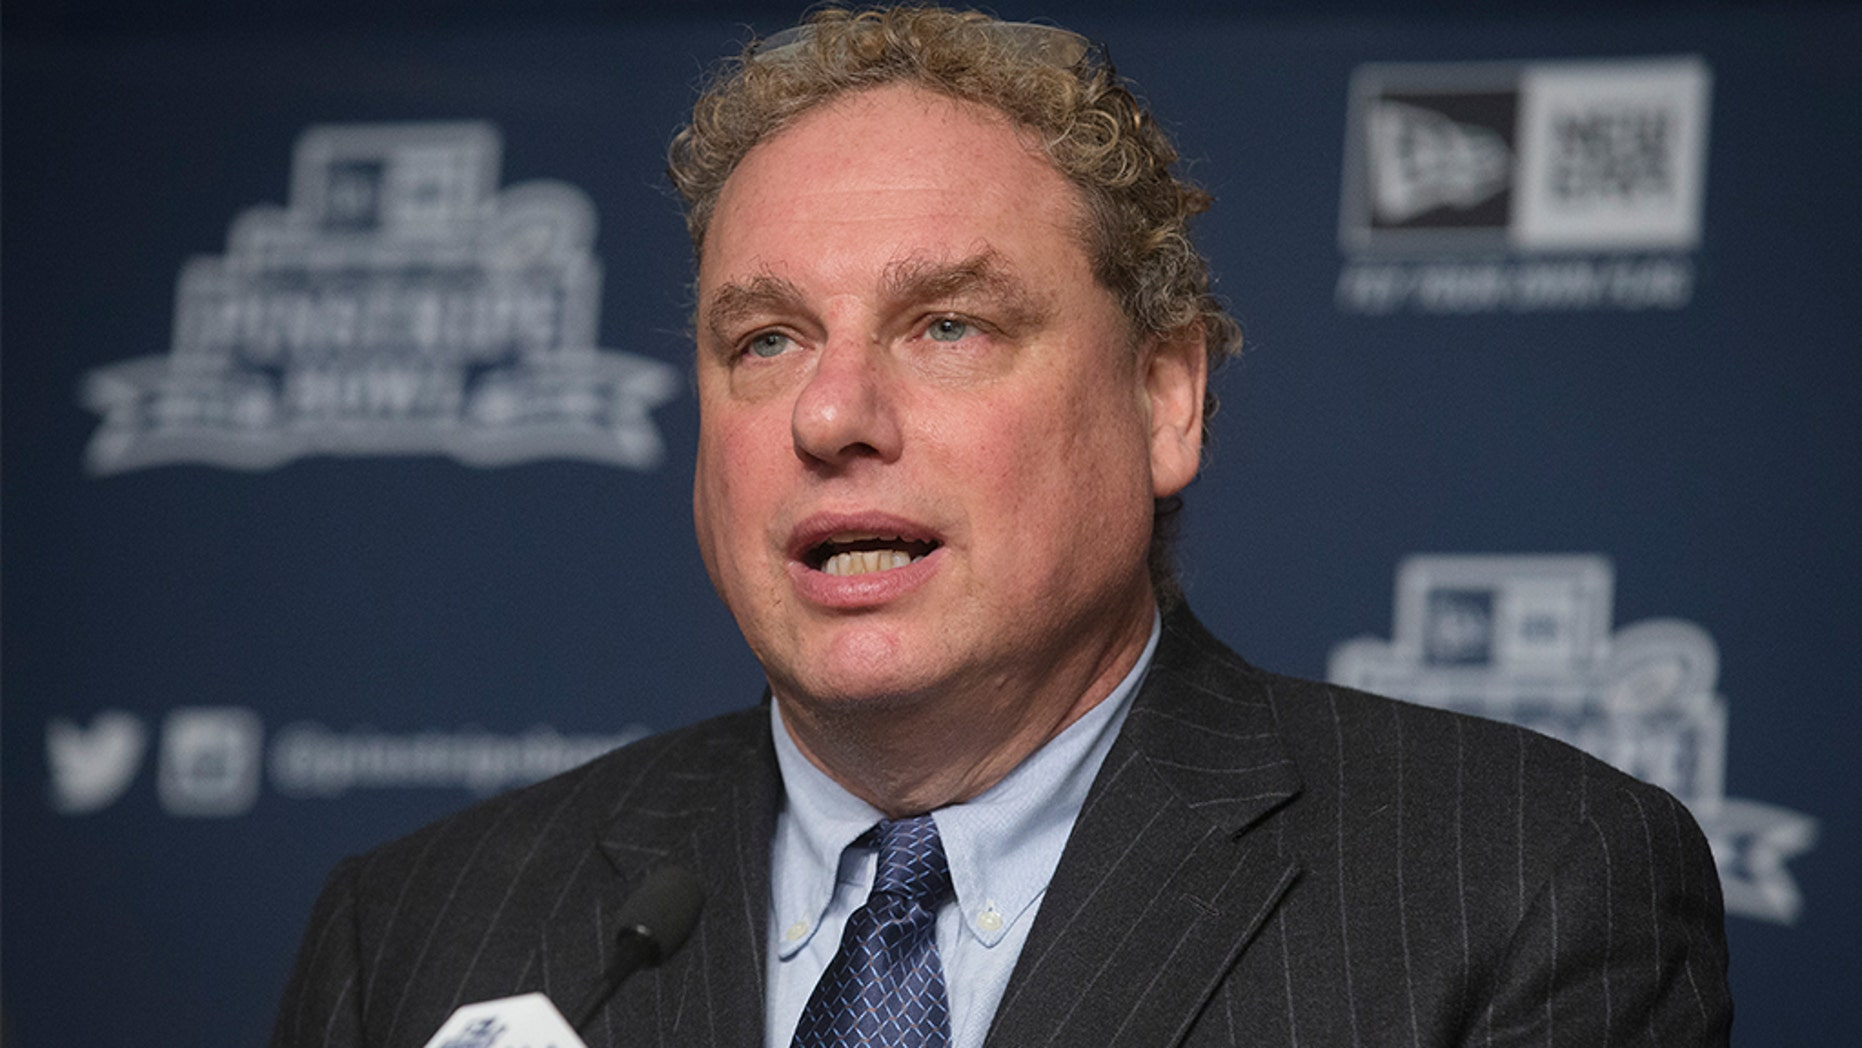 New York Yankees president Randy Levine speaks during a news conference at Yankee Stadium regarding the upcoming Pinstripe Bowl between Penn State and Boston College, Tuesday, Dec. 9, 2014, in the Bronx borough of New York. (AP Photo/John Minchillo)